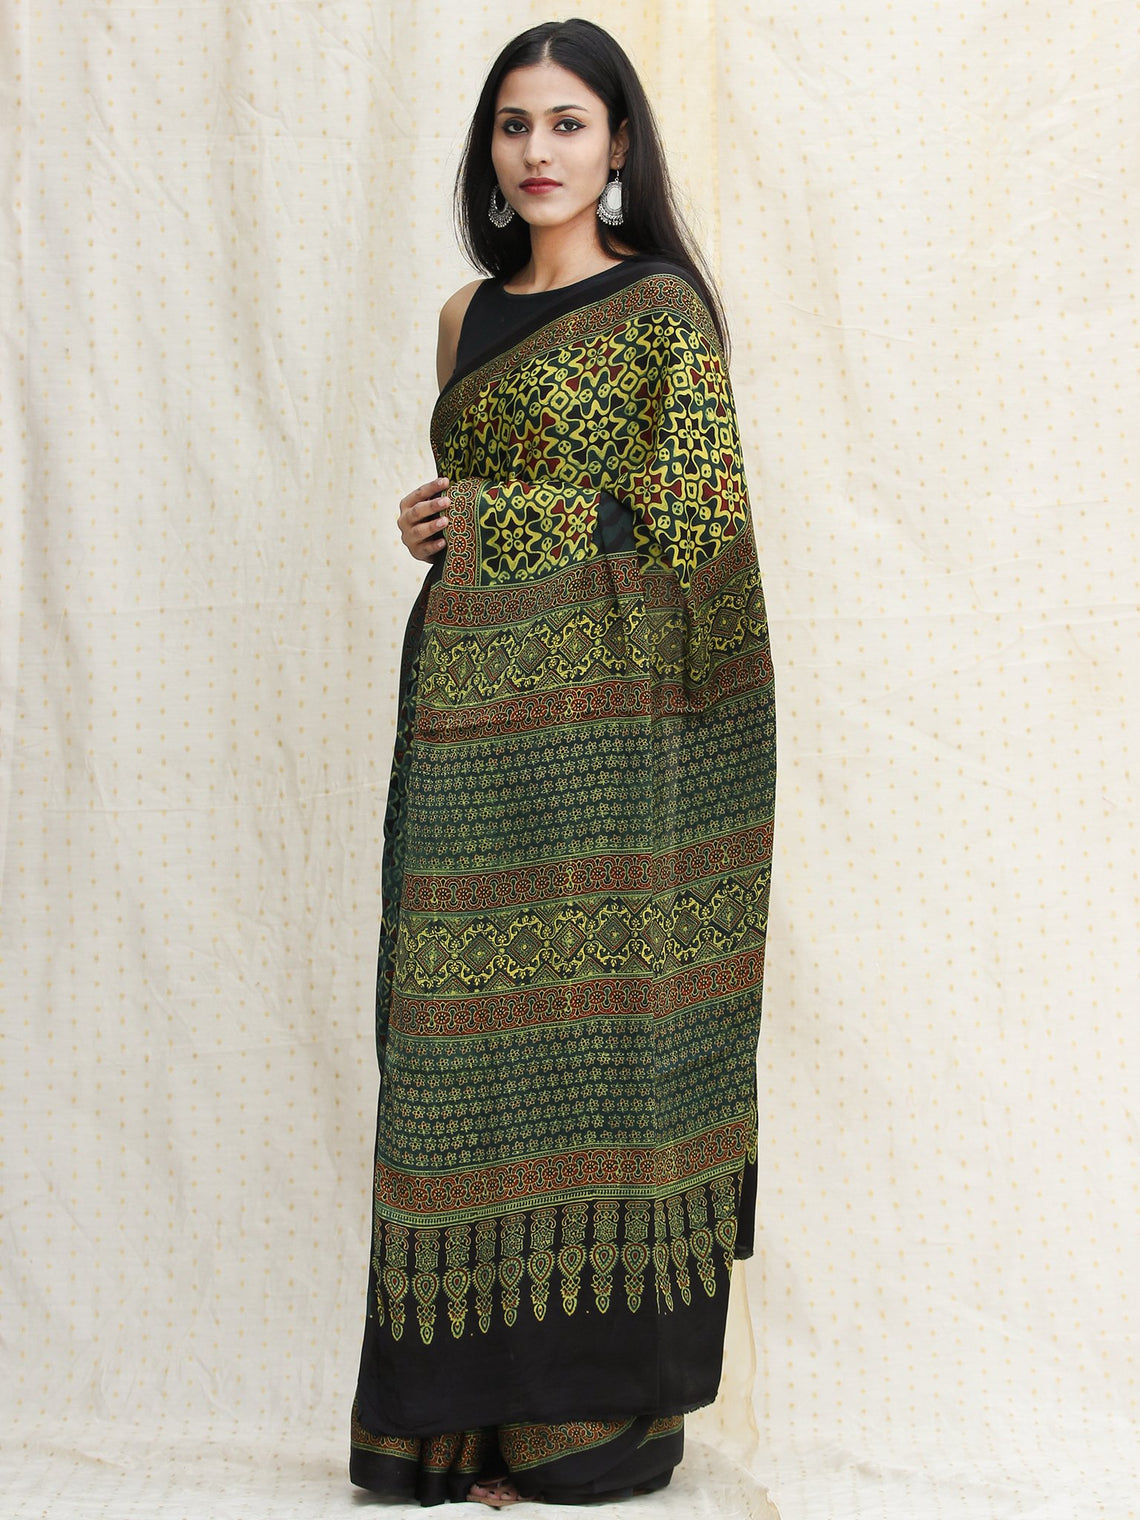 Bottle Green Black Lime Green Ajrakh Hand Block Printed Modal Silk Saree - S031704118